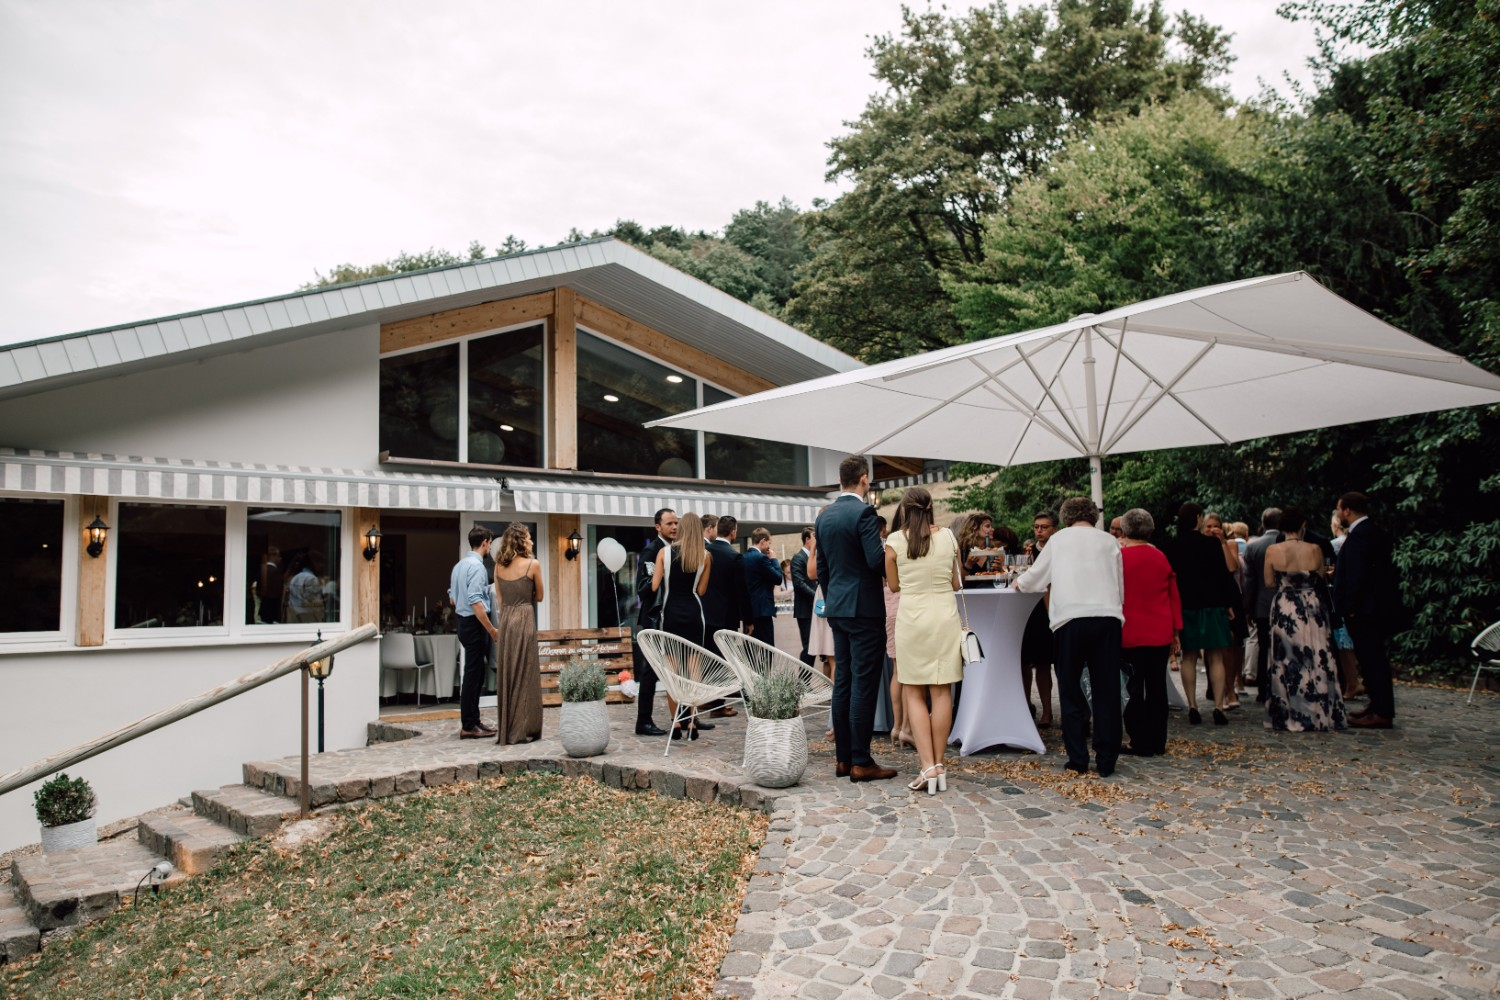 Hochzeit-Baden-Baden-Kitchen-and-Soul-Eckberg-The Saums-Fotograf-NJ-S108.jpg